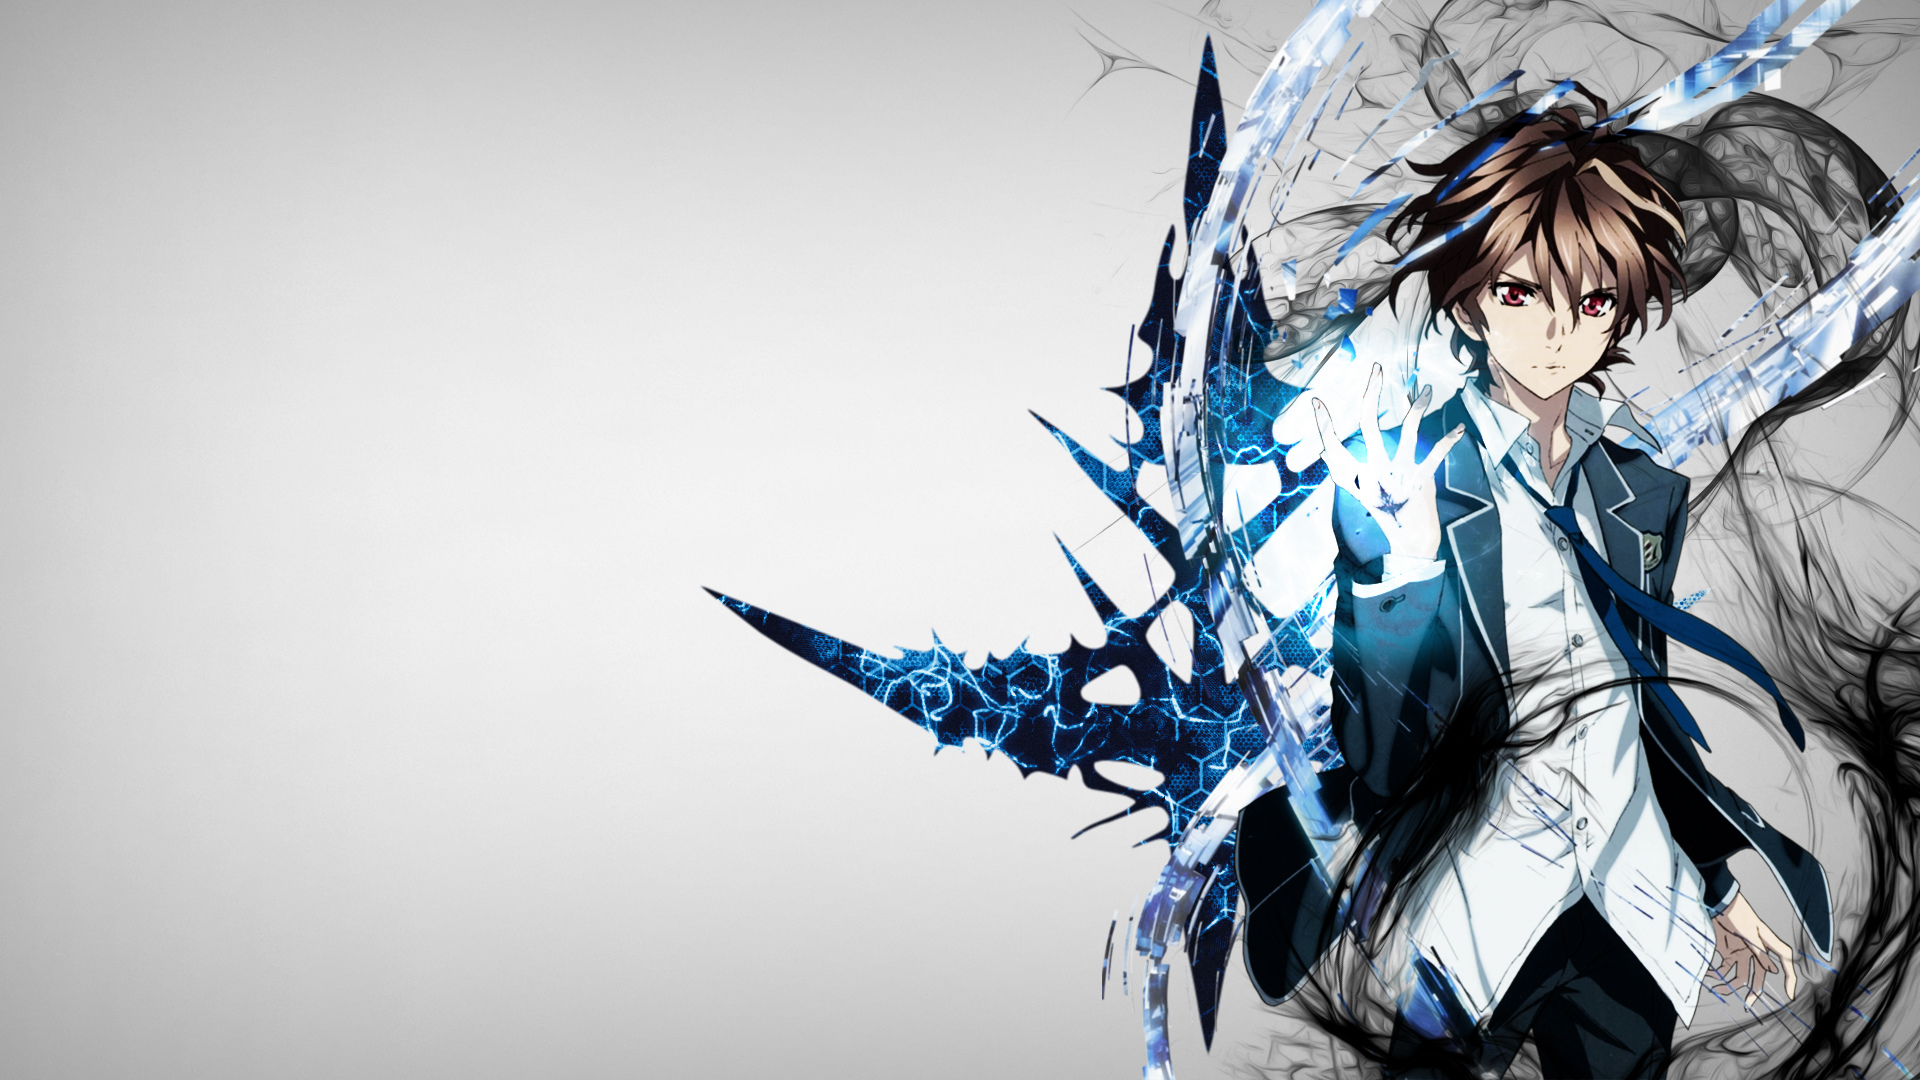 Images of Guilty Crown | 1920x1080